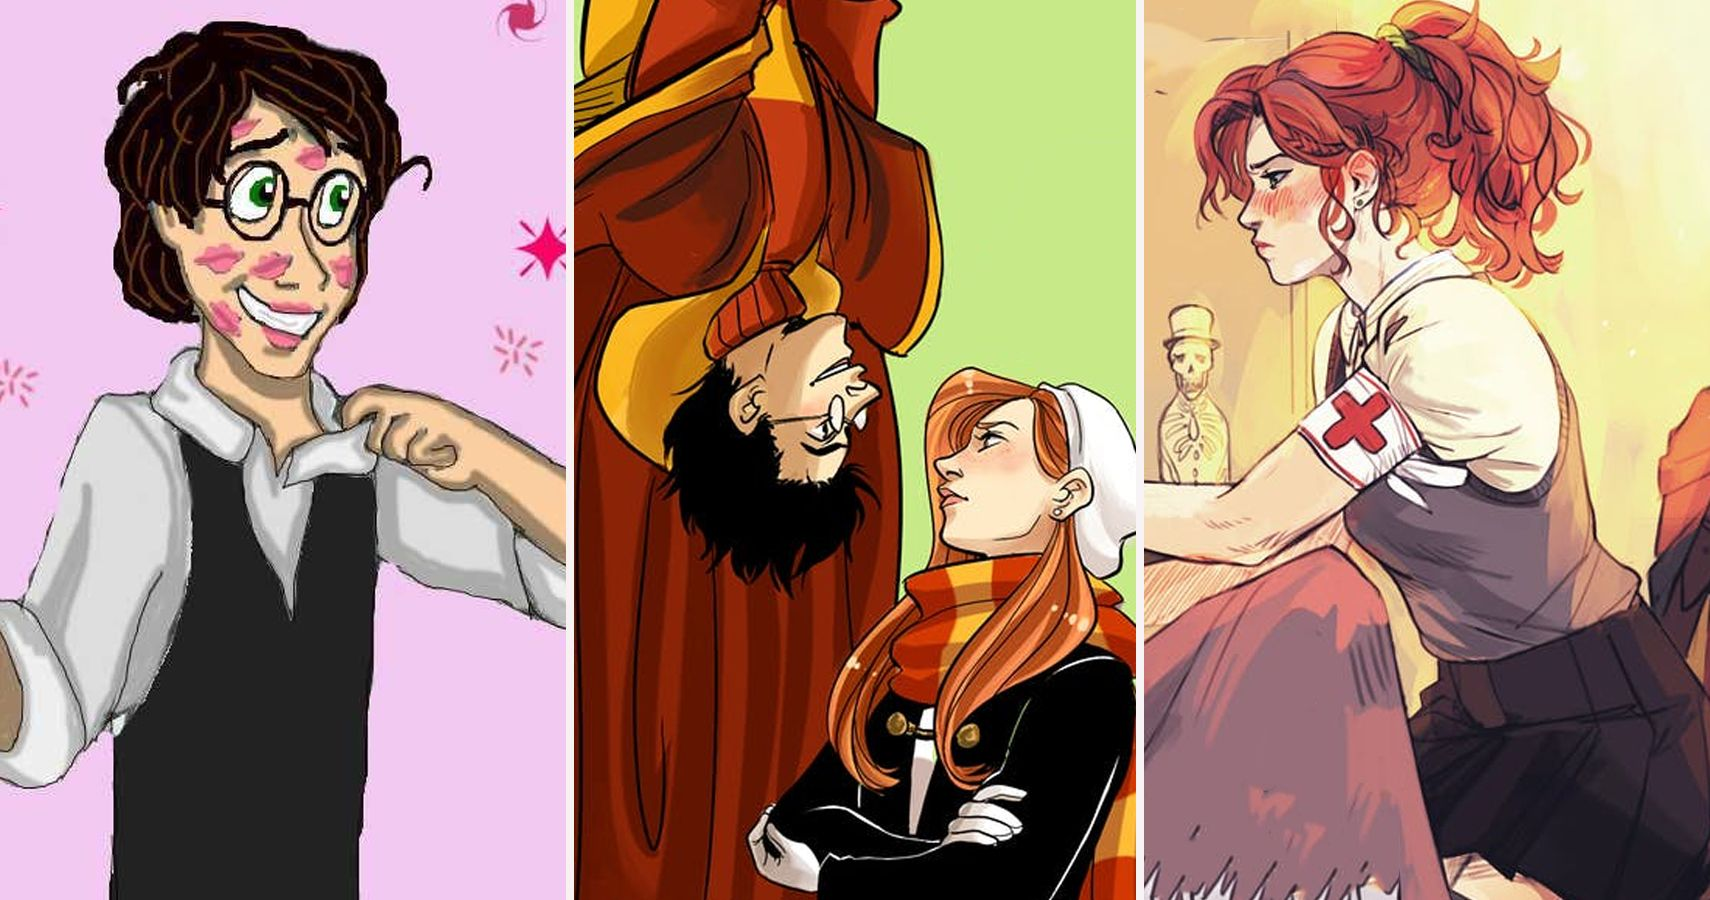 24 Harry Potter Comics That Are Adorable | TheGamer